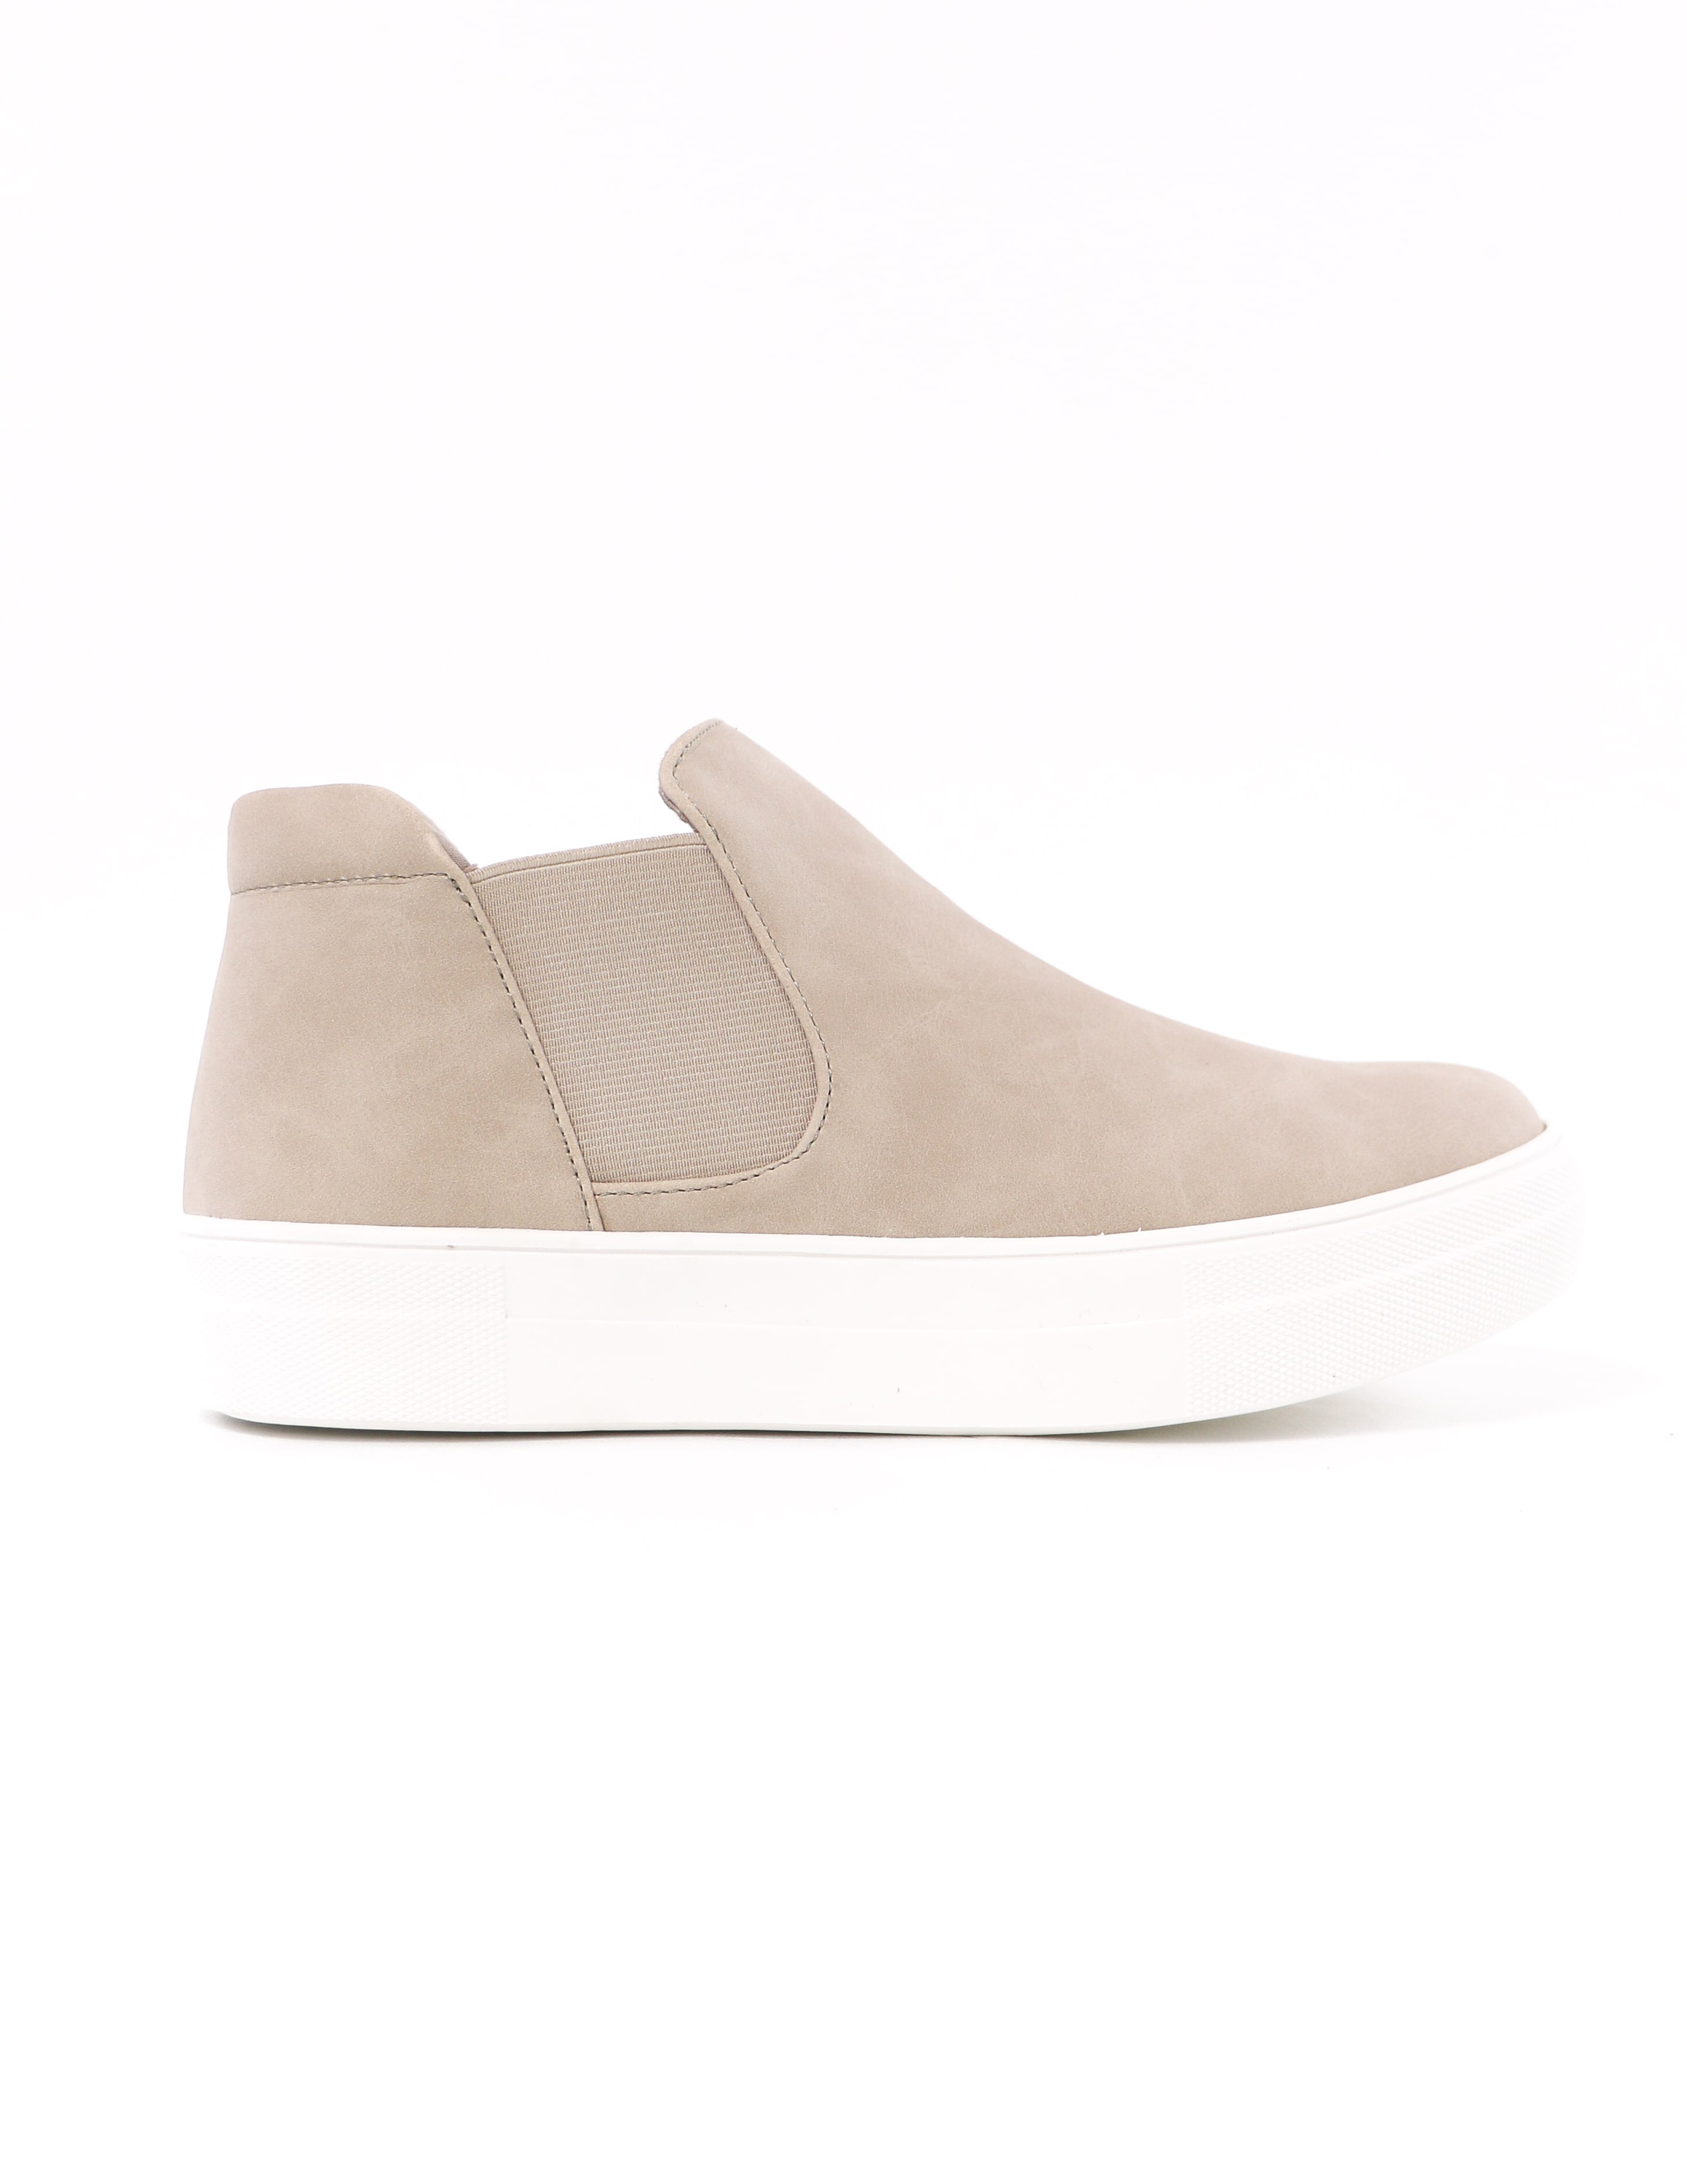 white rubber sole and elastic gore on the sand now or never platform sneaker - elle bleu shoes